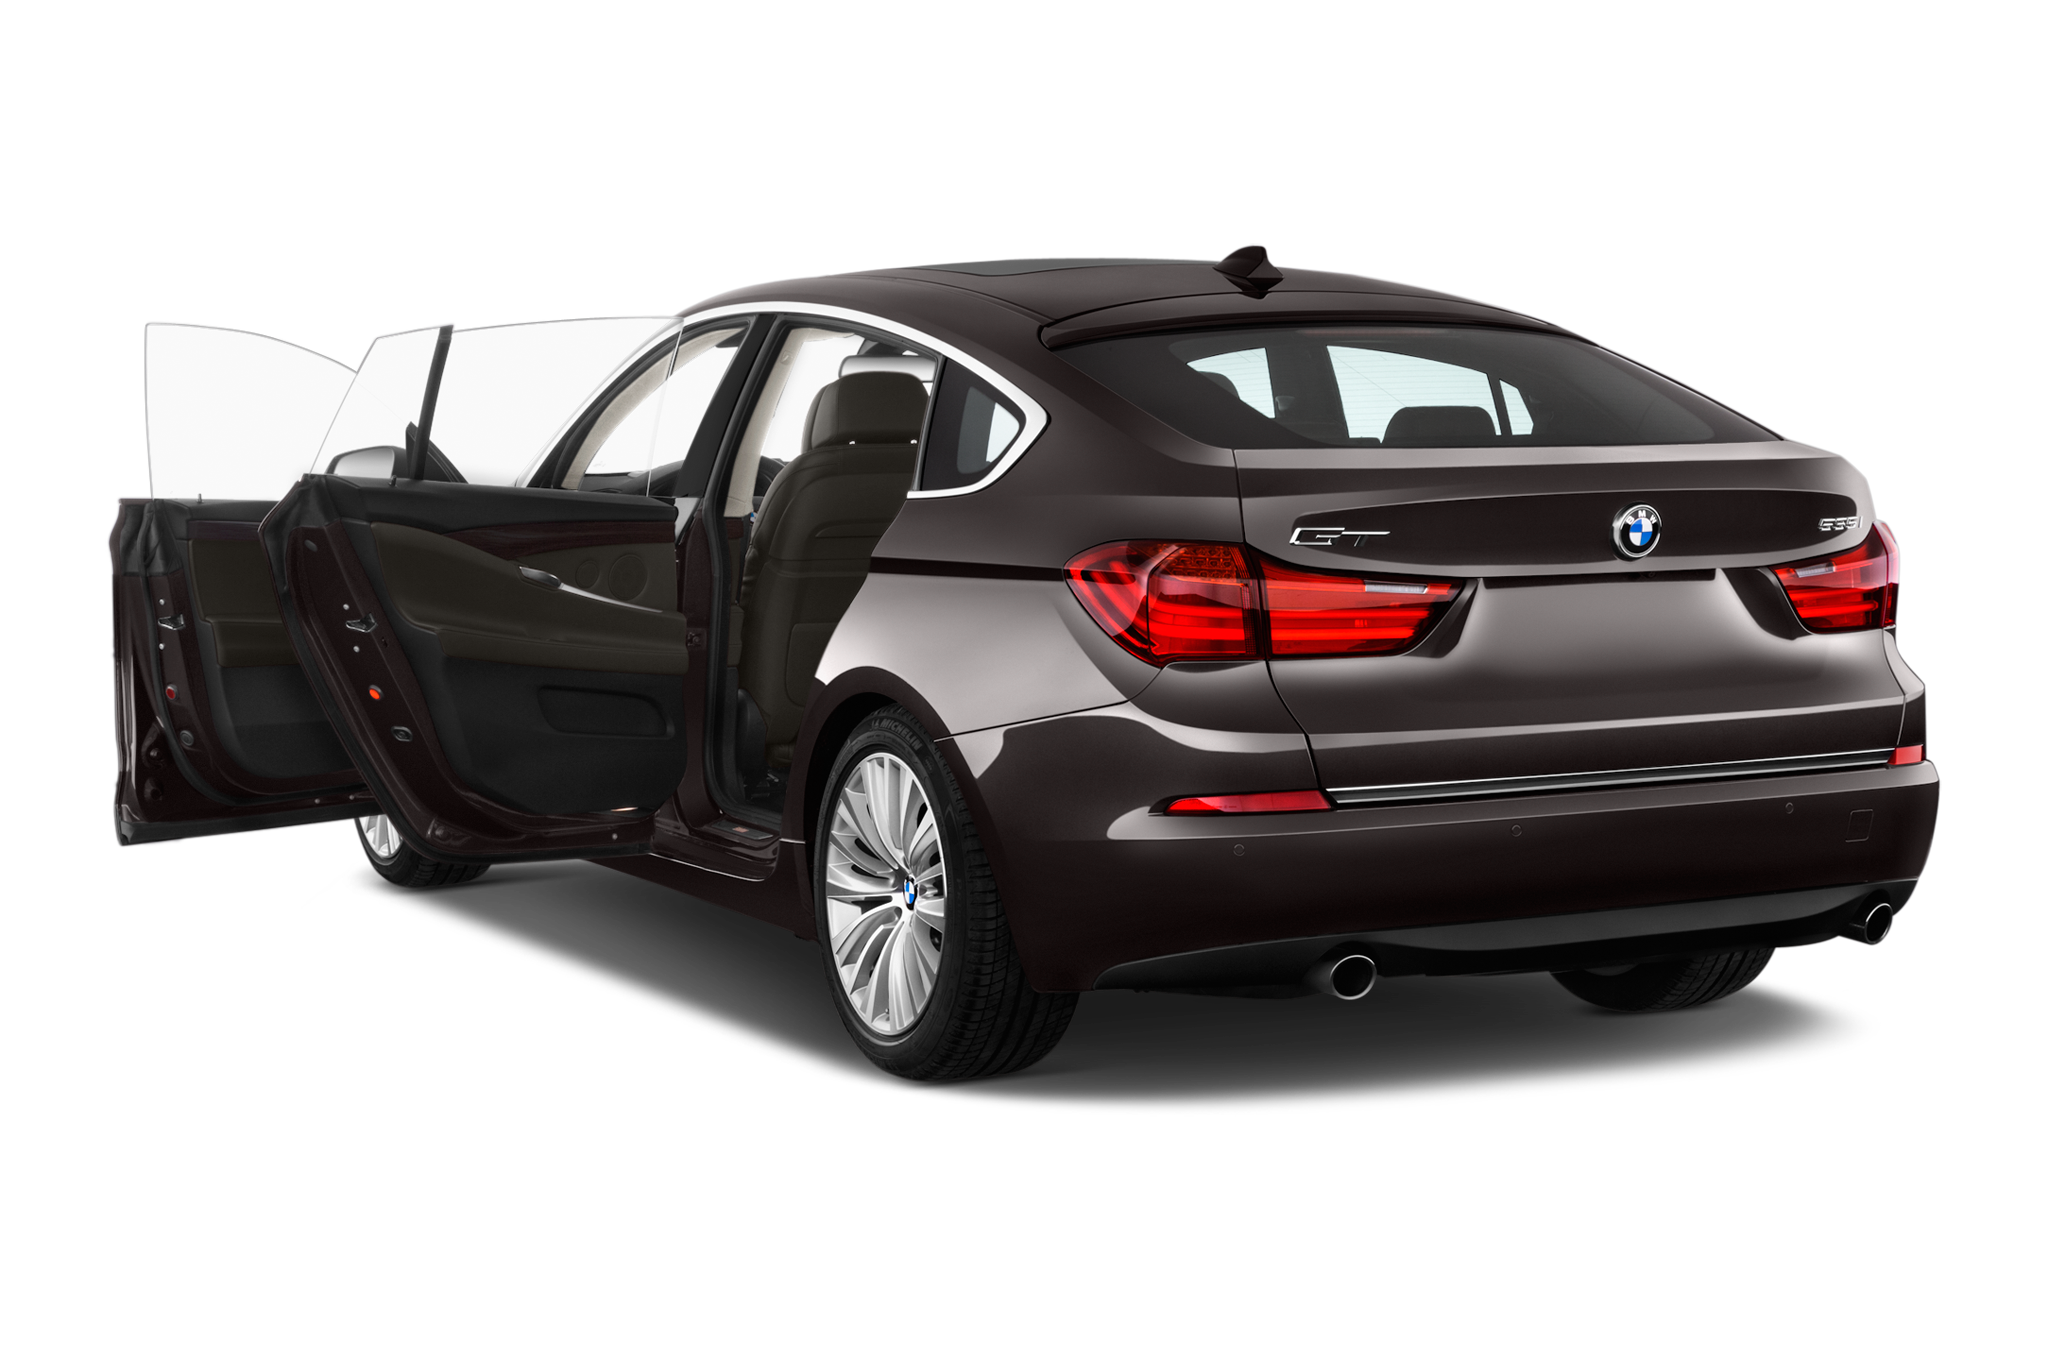 2017 bmw 5 series sedan spied with sleeker shape. Black Bedroom Furniture Sets. Home Design Ideas